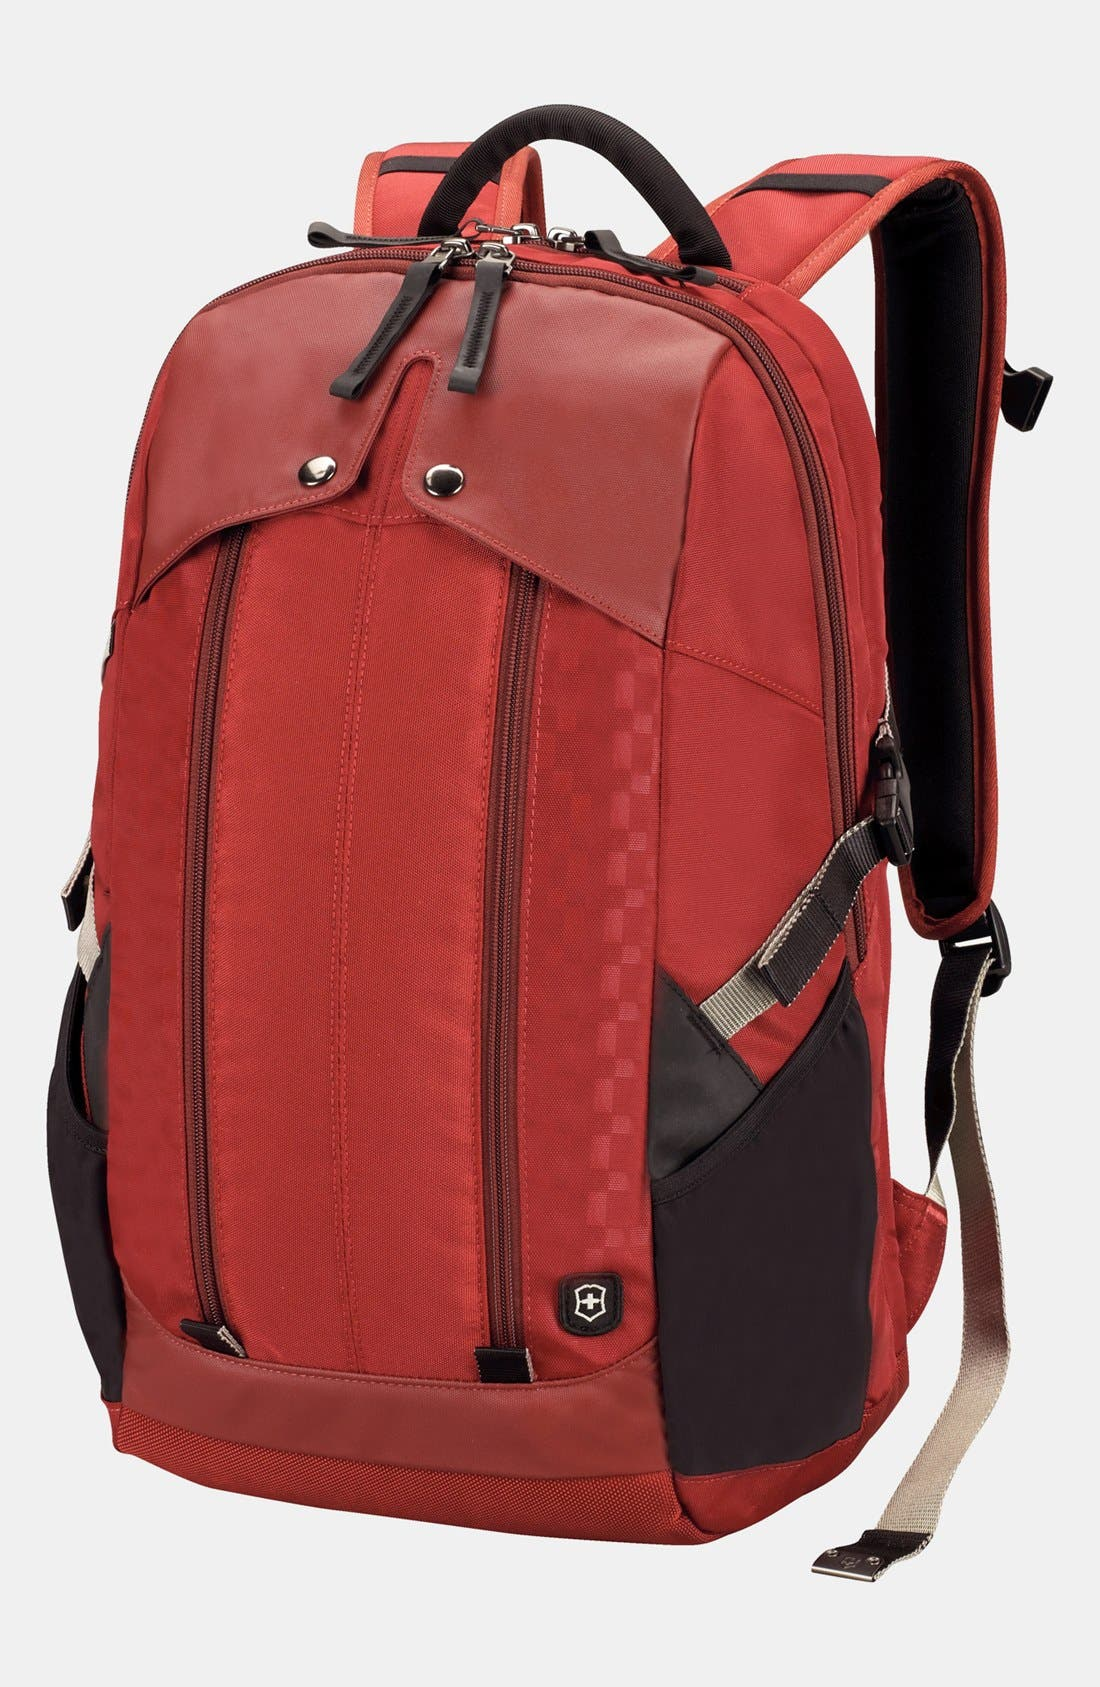 Altmont Backpack,                             Main thumbnail 1, color,                             610